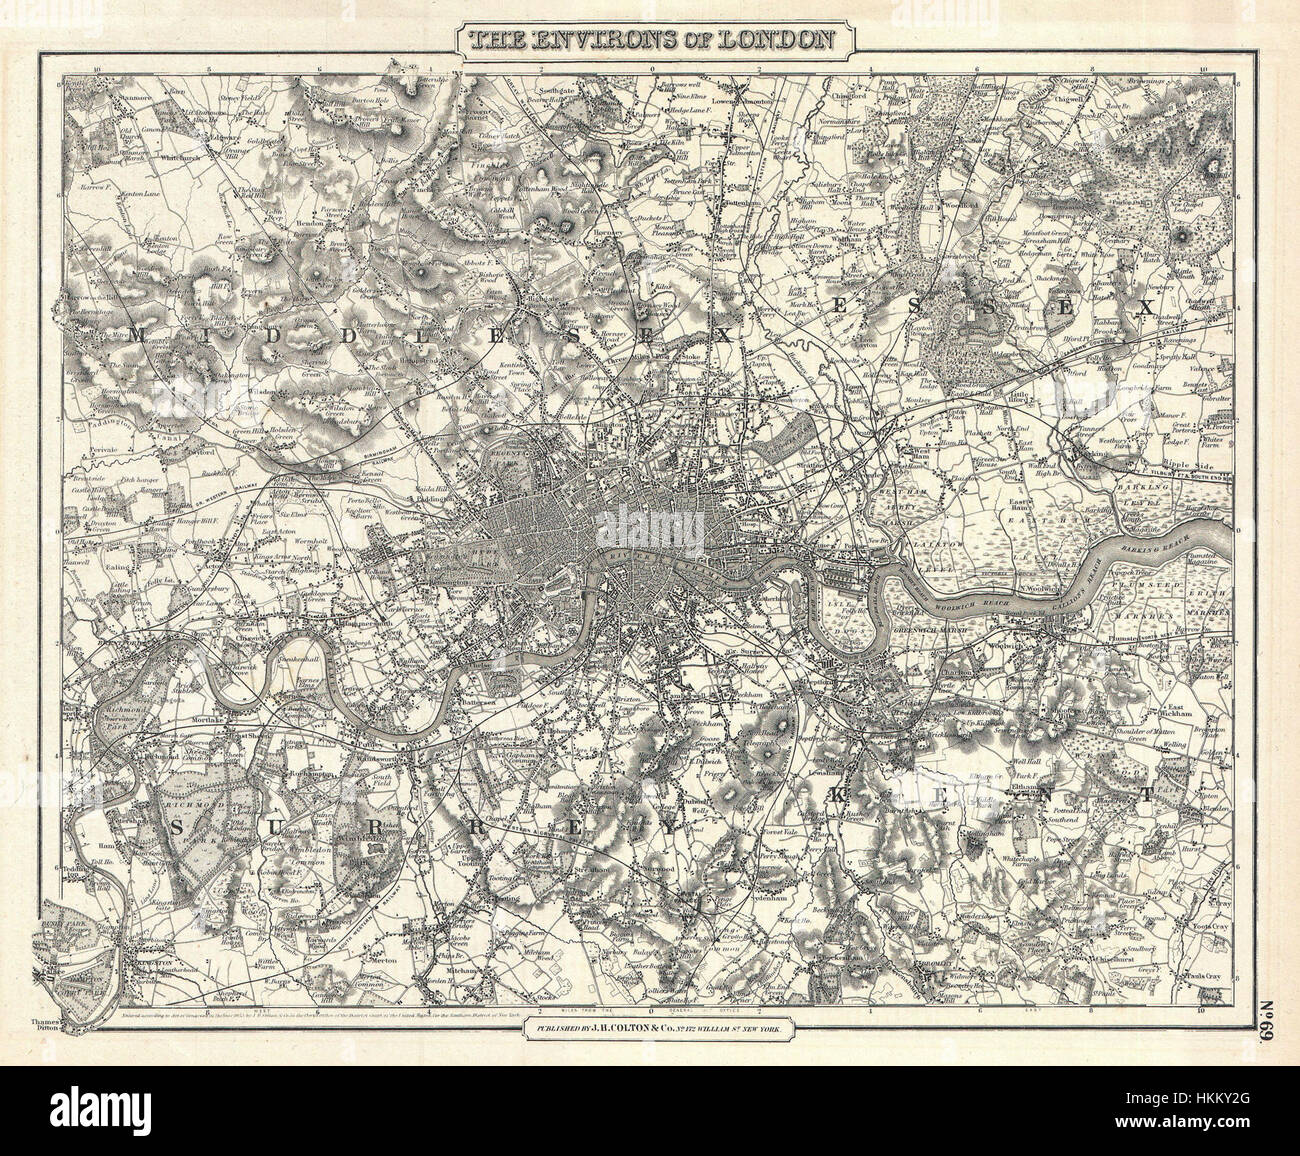 1855 Colton Map of London, England - Geographicus - London-cbl-1855 - Stock Image